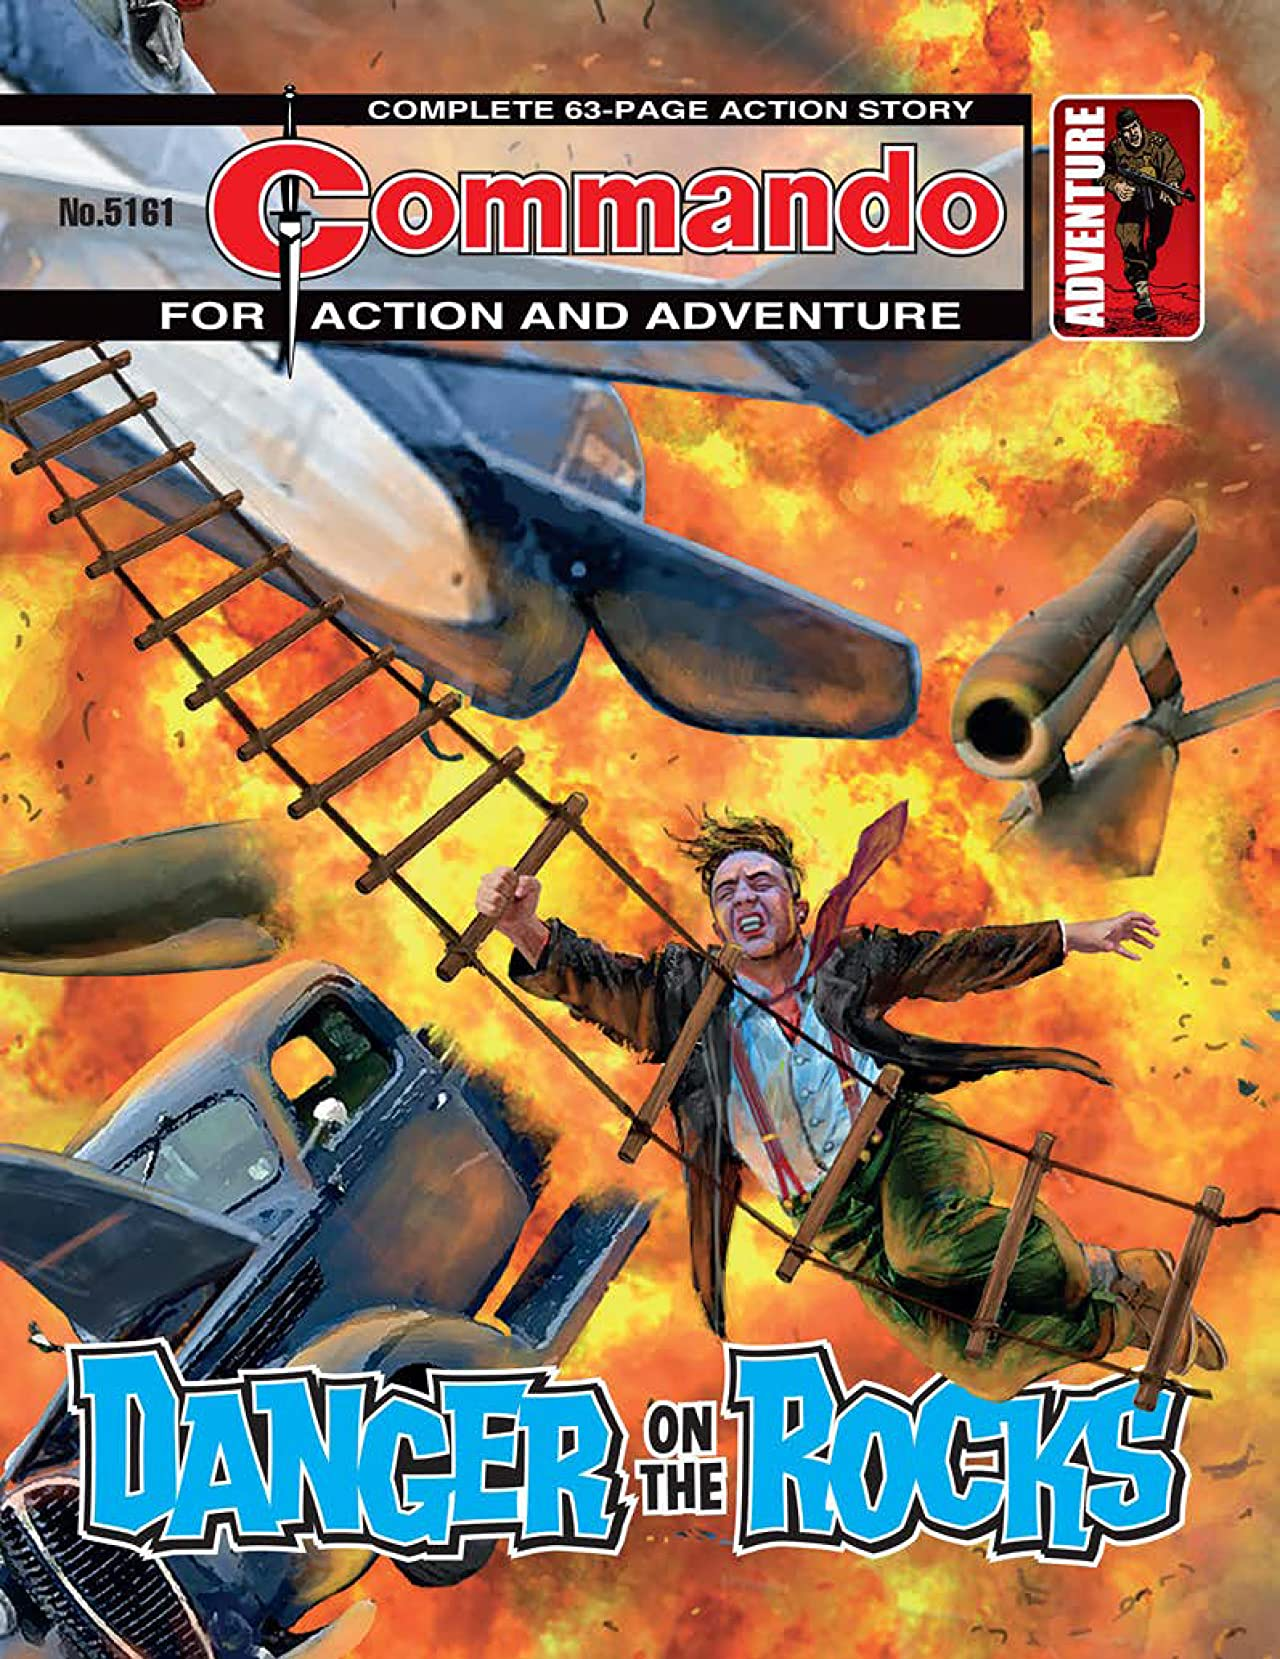 Commando #5161: Danger On The Rocks